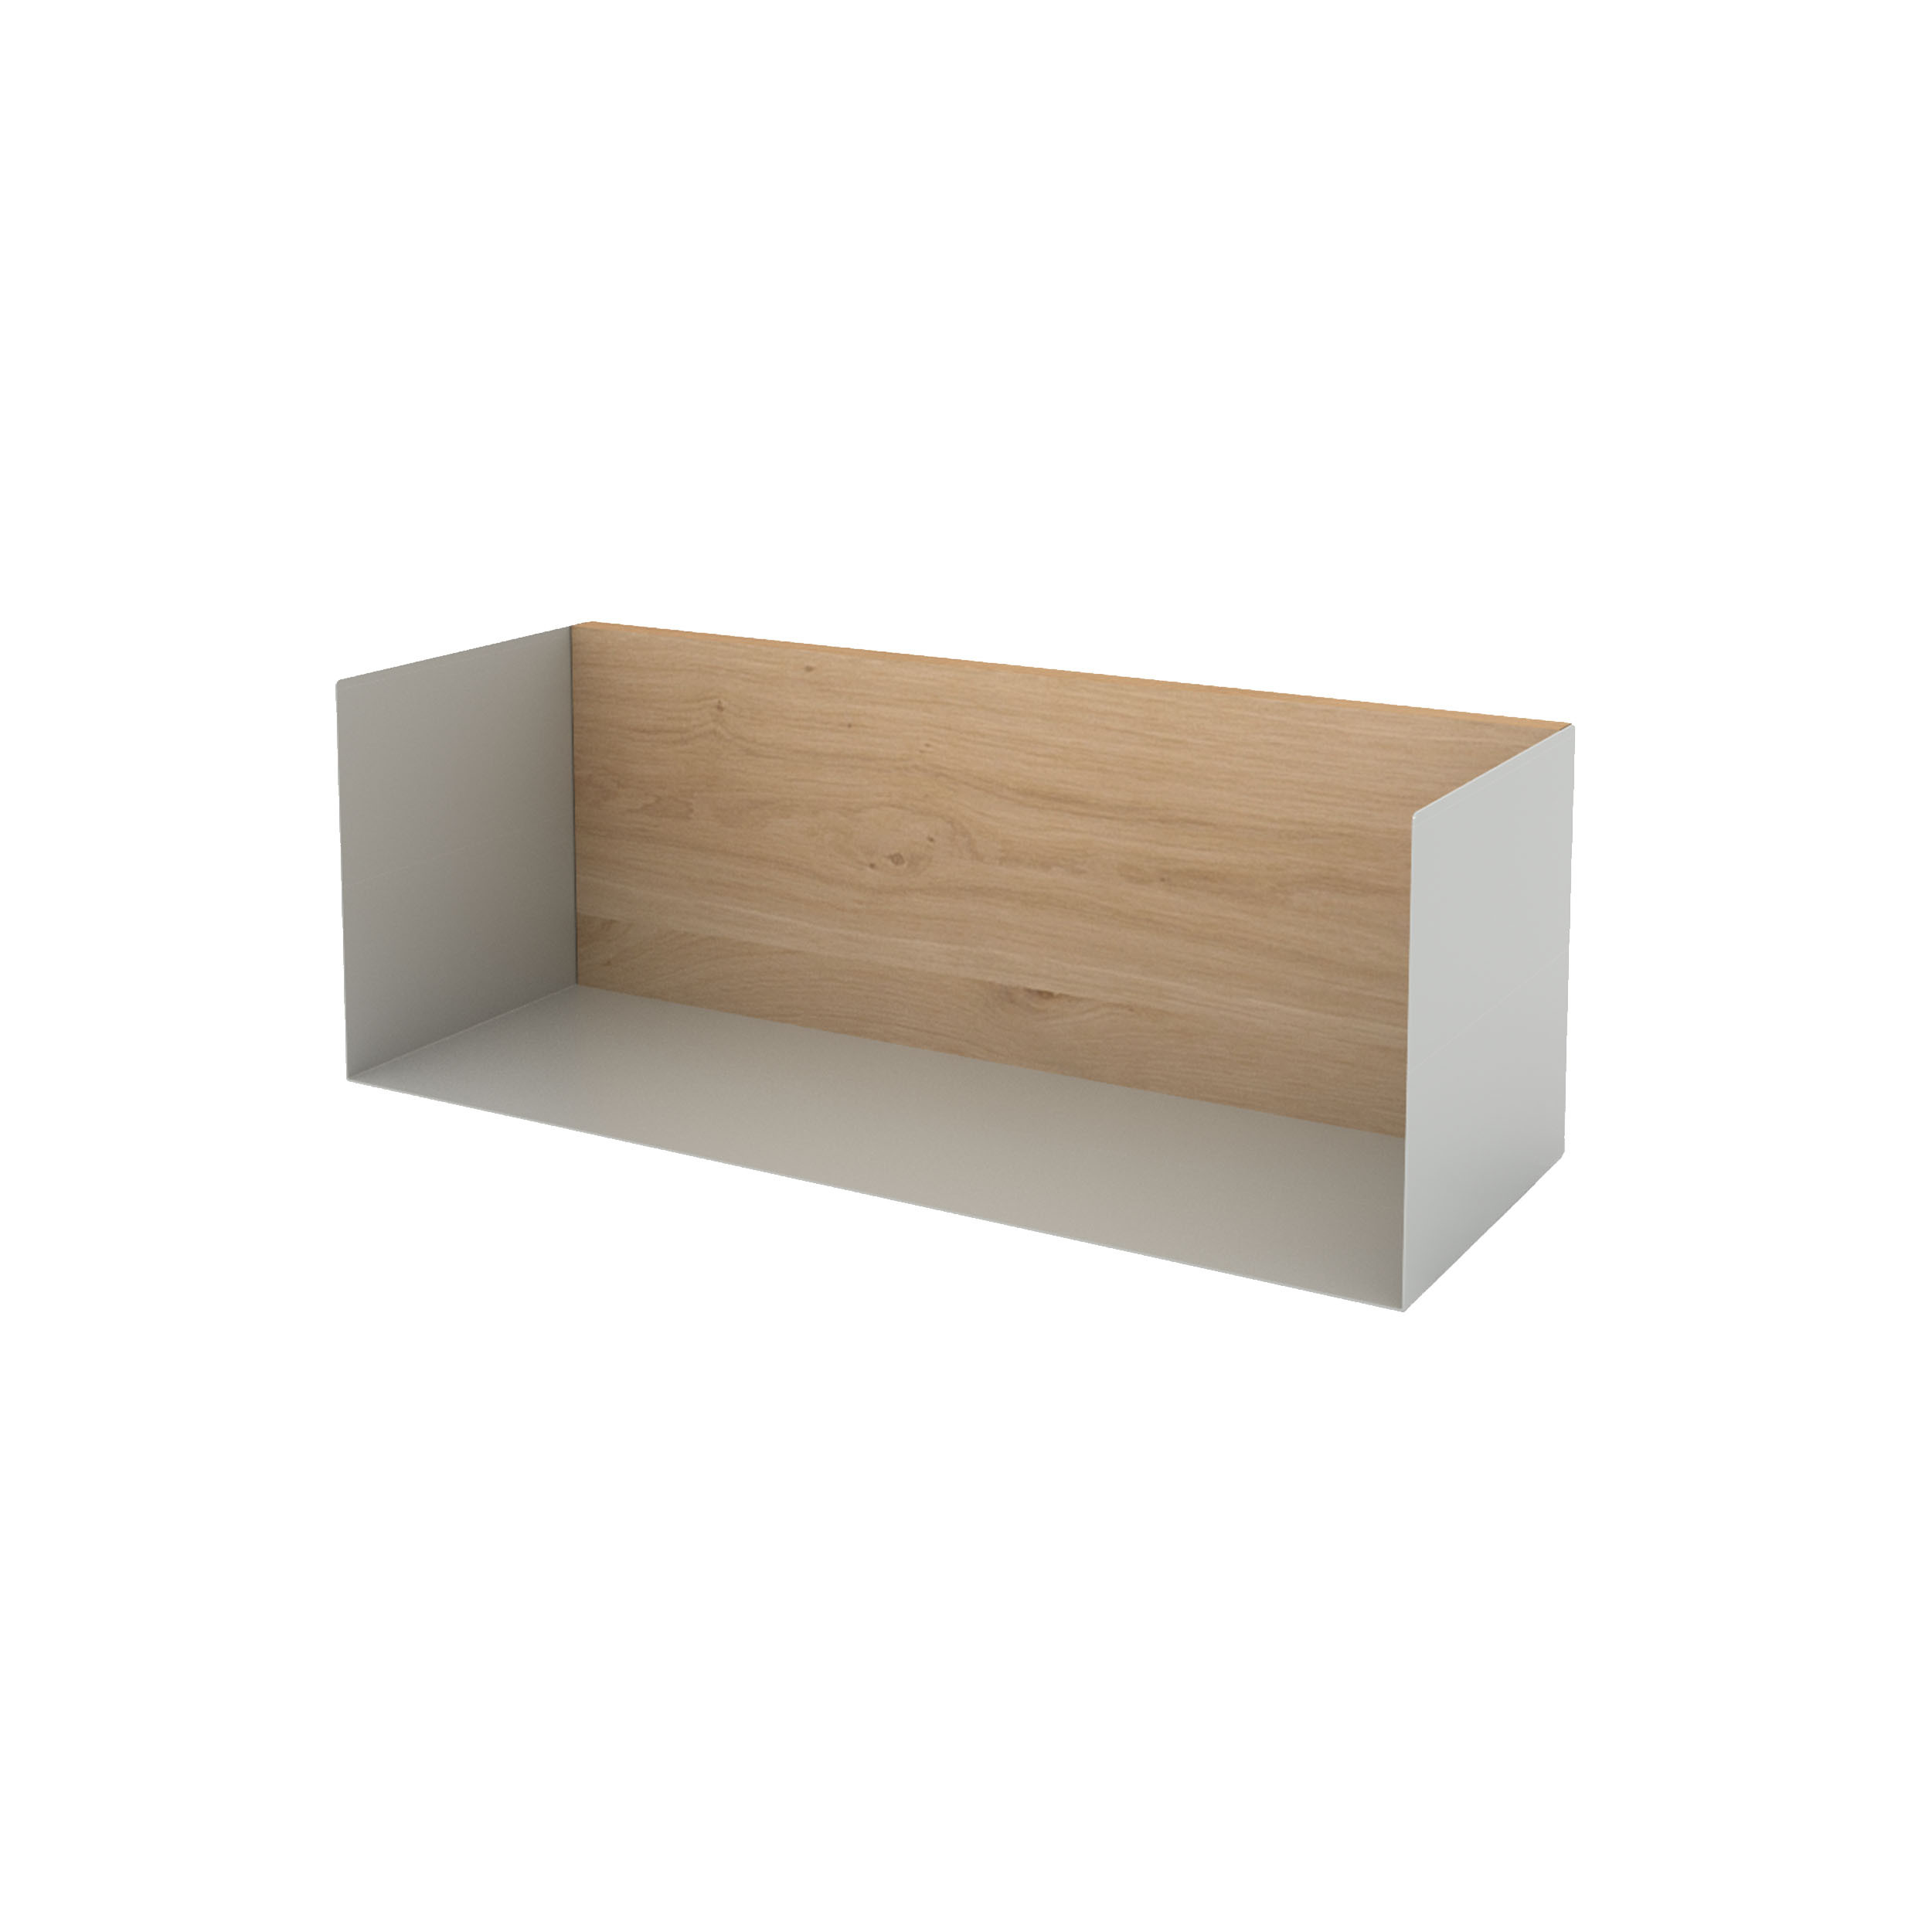 Regal Shelfy U Shelf Regal A046488 005 Online Kaufen Bei Woonio